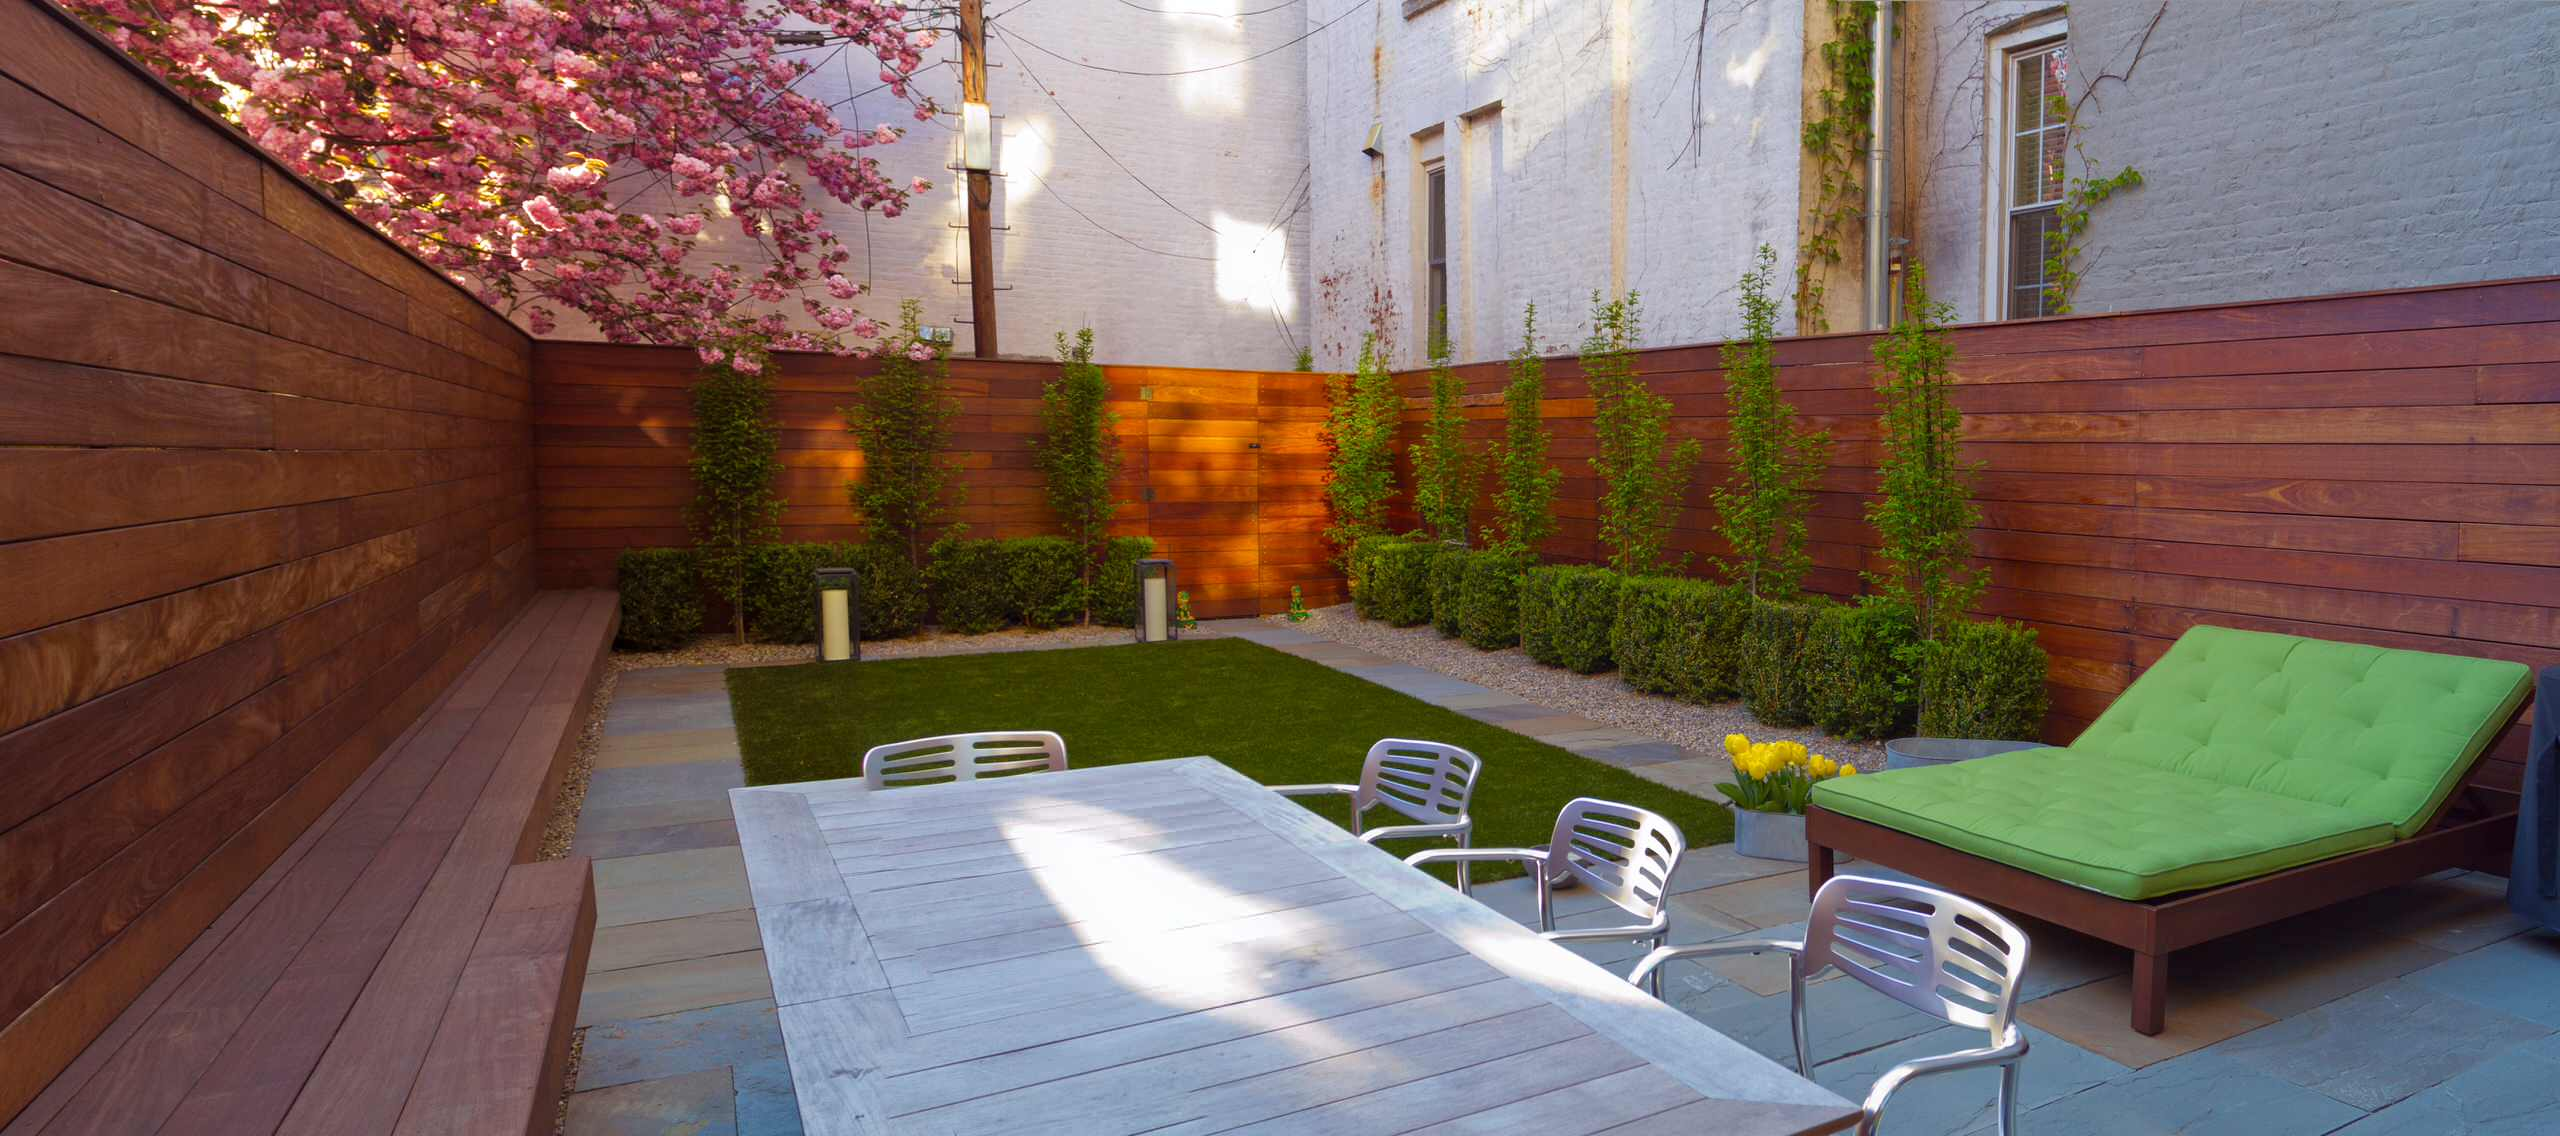 16 Delightful Modern Landscape Ideas That Will Update Your ... on Backyard Designs  id=51231